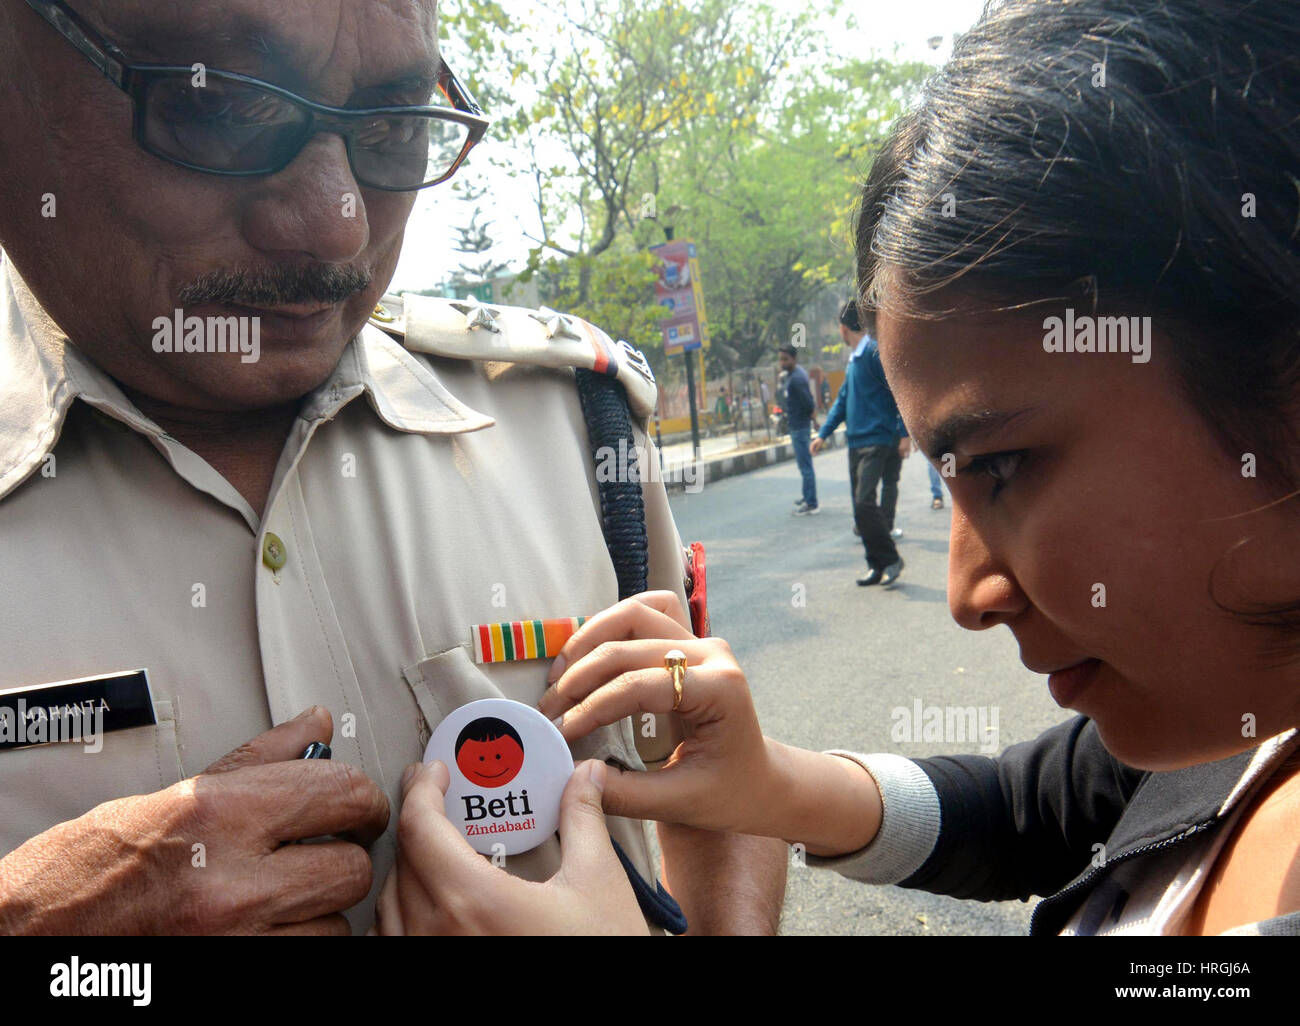 (170303) -- GUWAHATI(INDIA), March 3, 2017 (Xinhua) -- A girl stitches a badge onto shirt of a policeman to promote - Stock Image